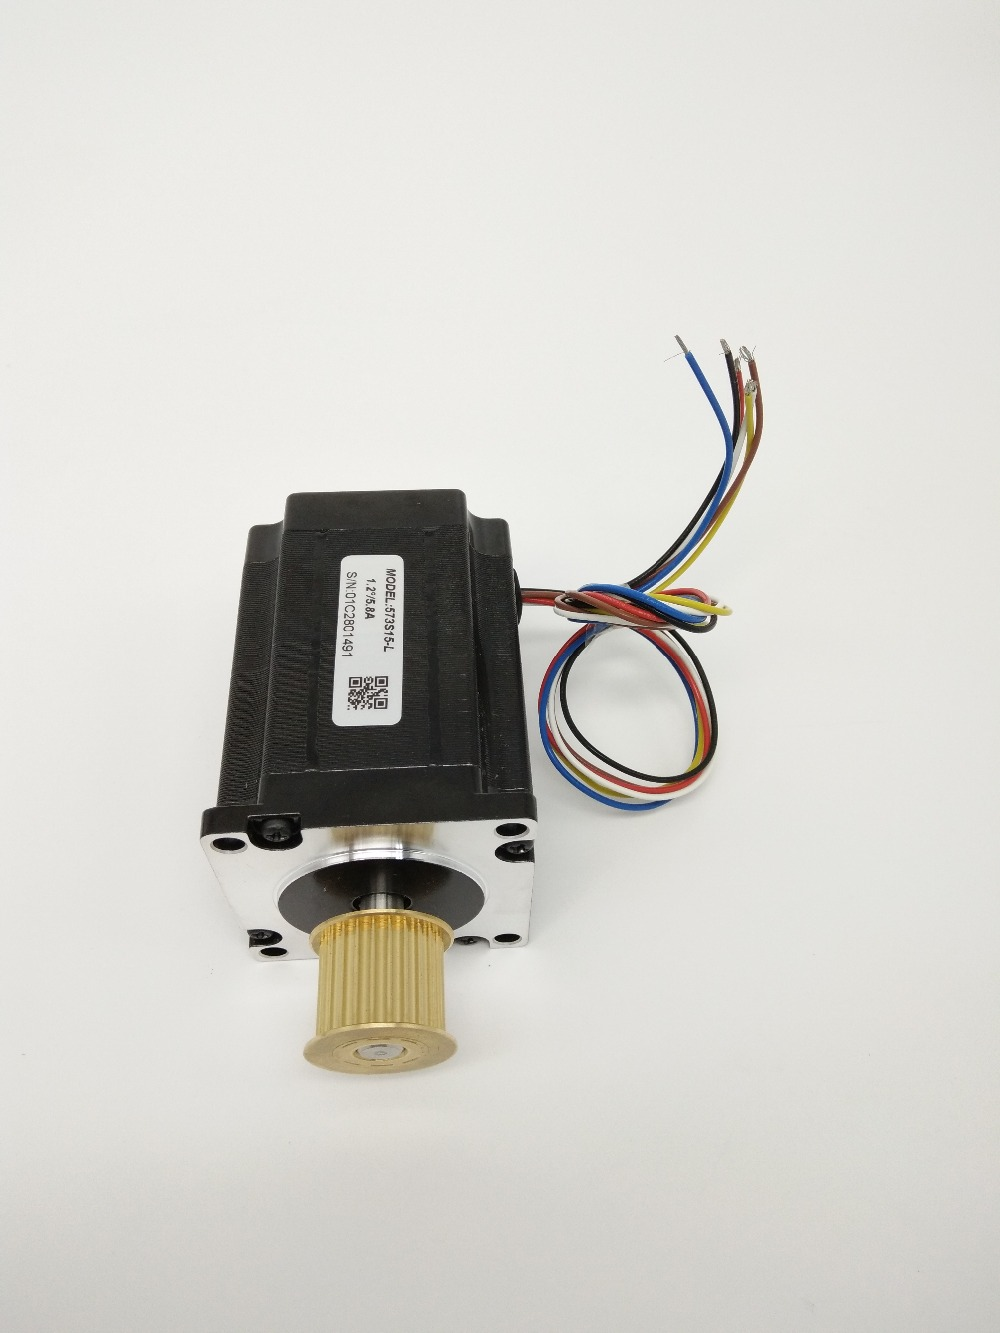 573S15L  - 1.5 N.m (212 Oz-In) 3 Phase NEMA 23 Stepper Motor with 3ND583 Driver